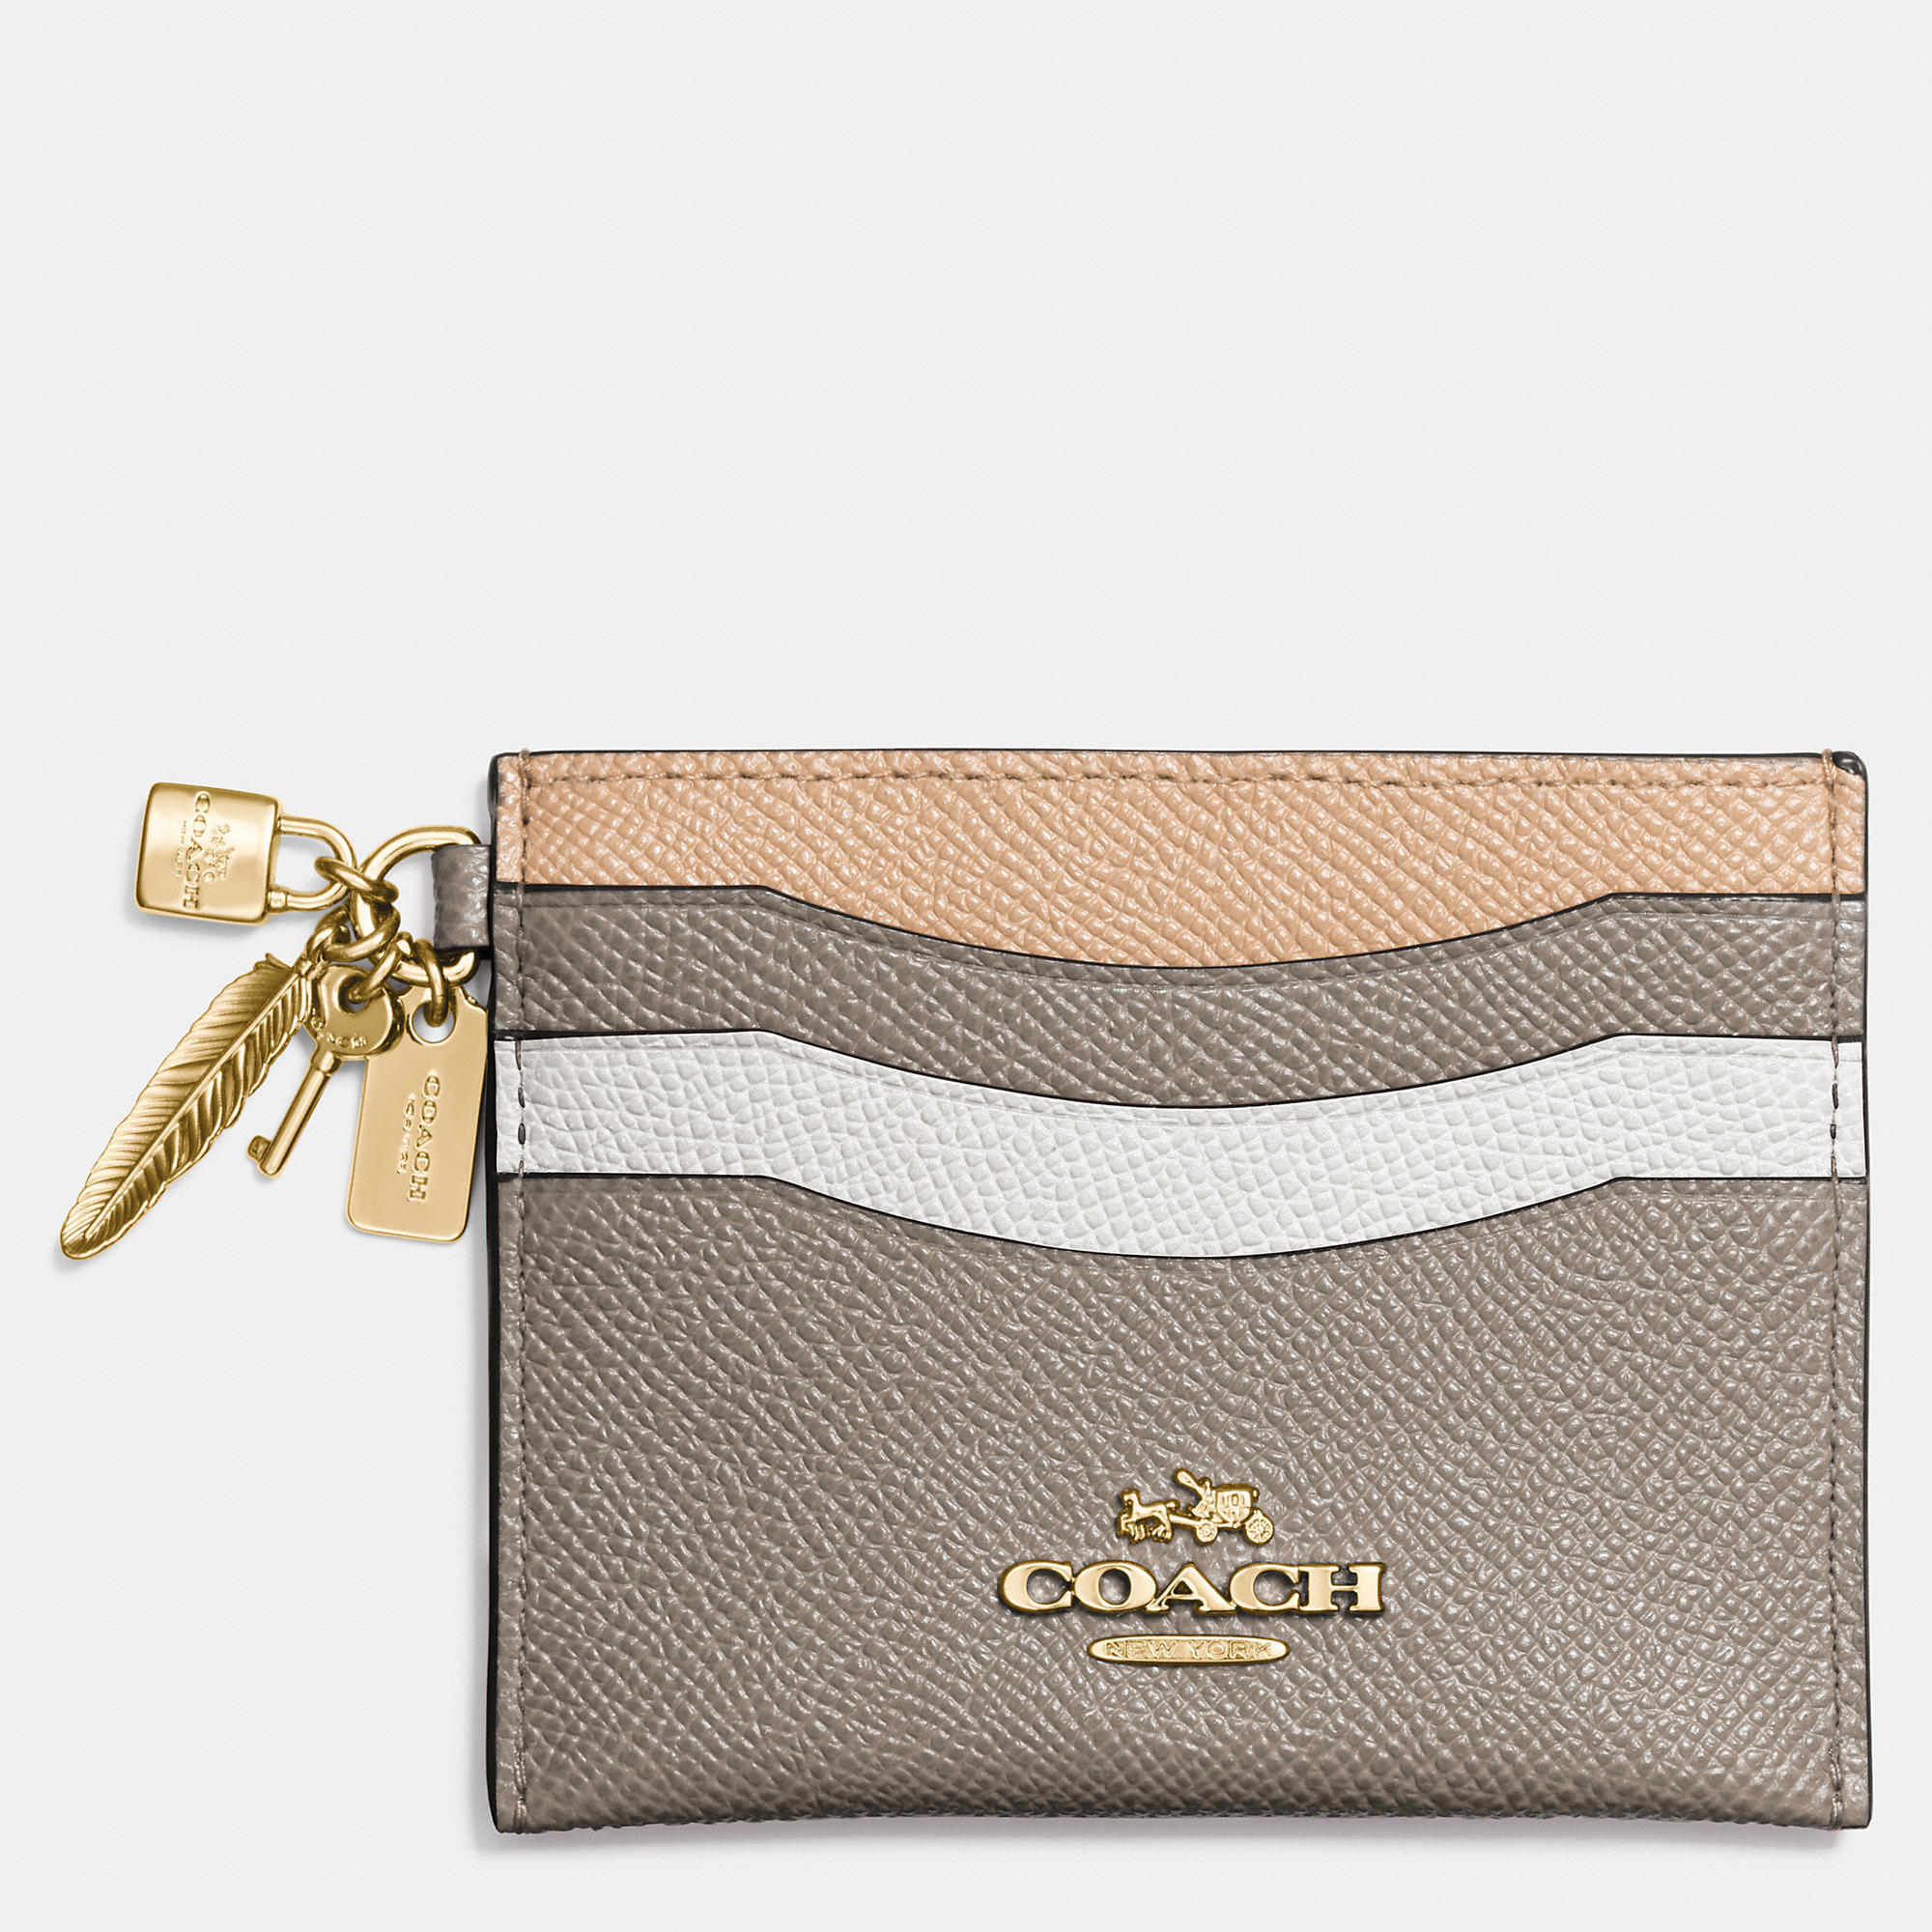 Coach Charm Flat Card Case In Colorblock Leather in Metallic : Lyst